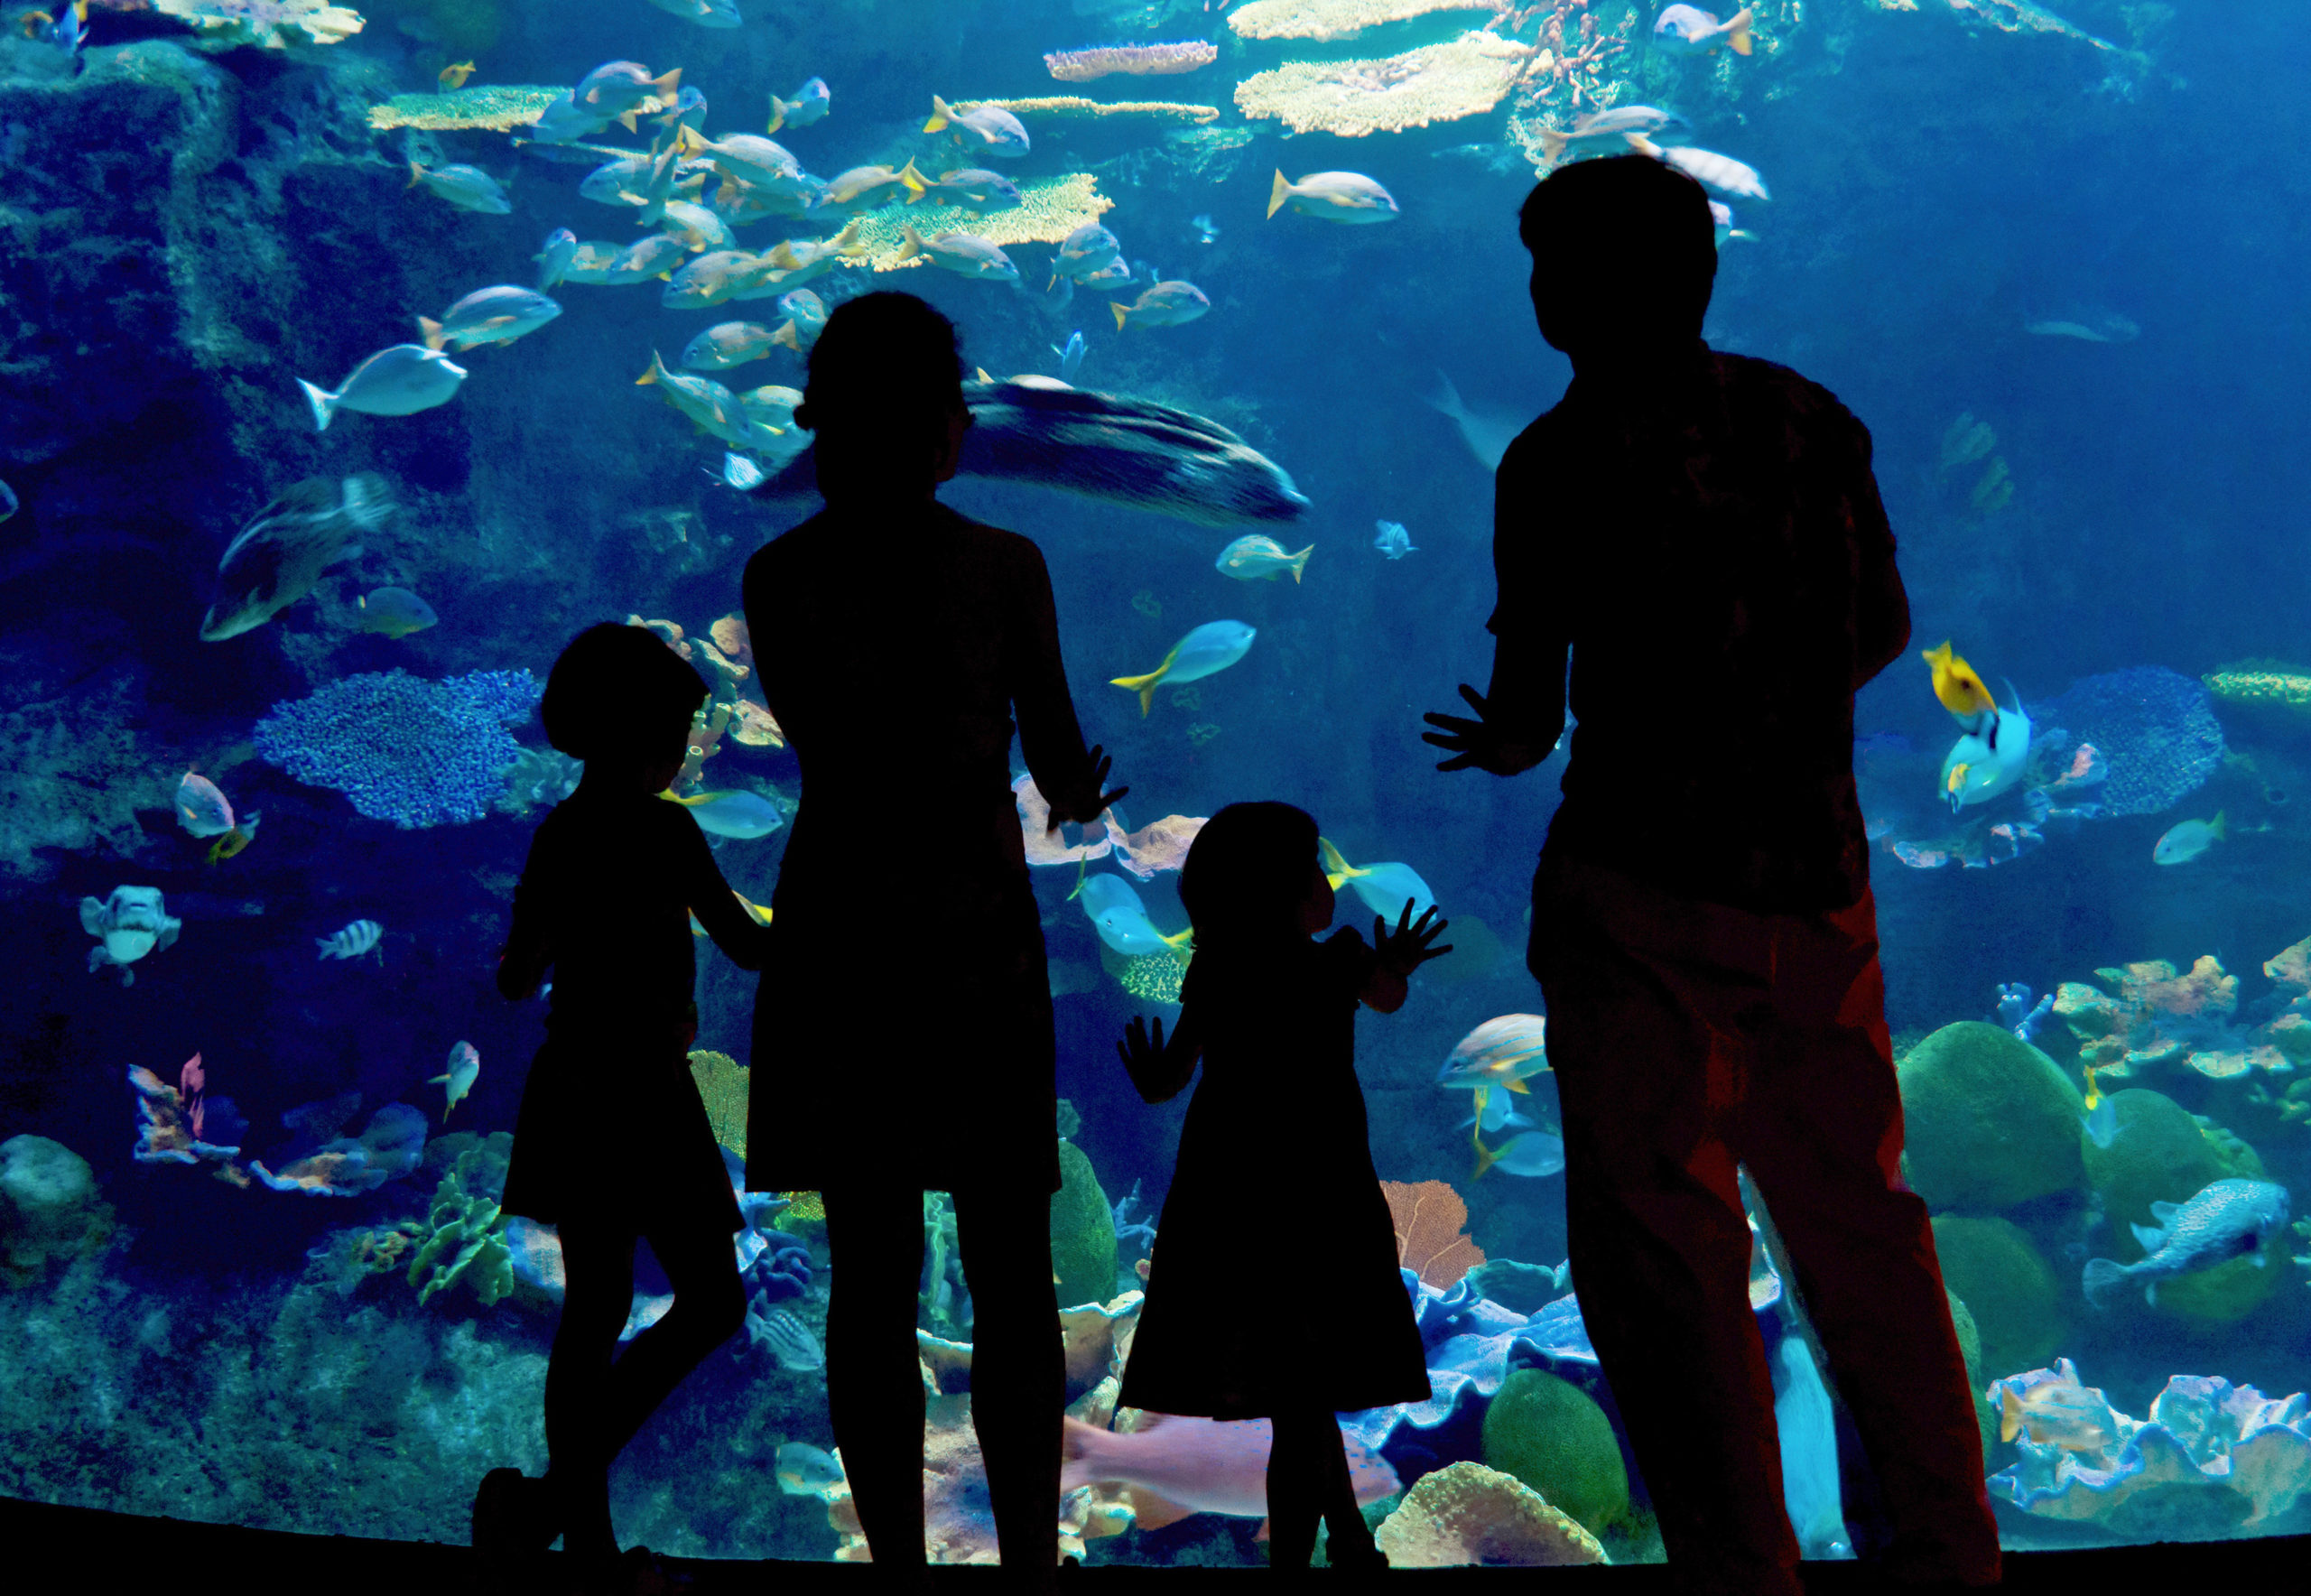 Silhouettes of a family at the aquarium